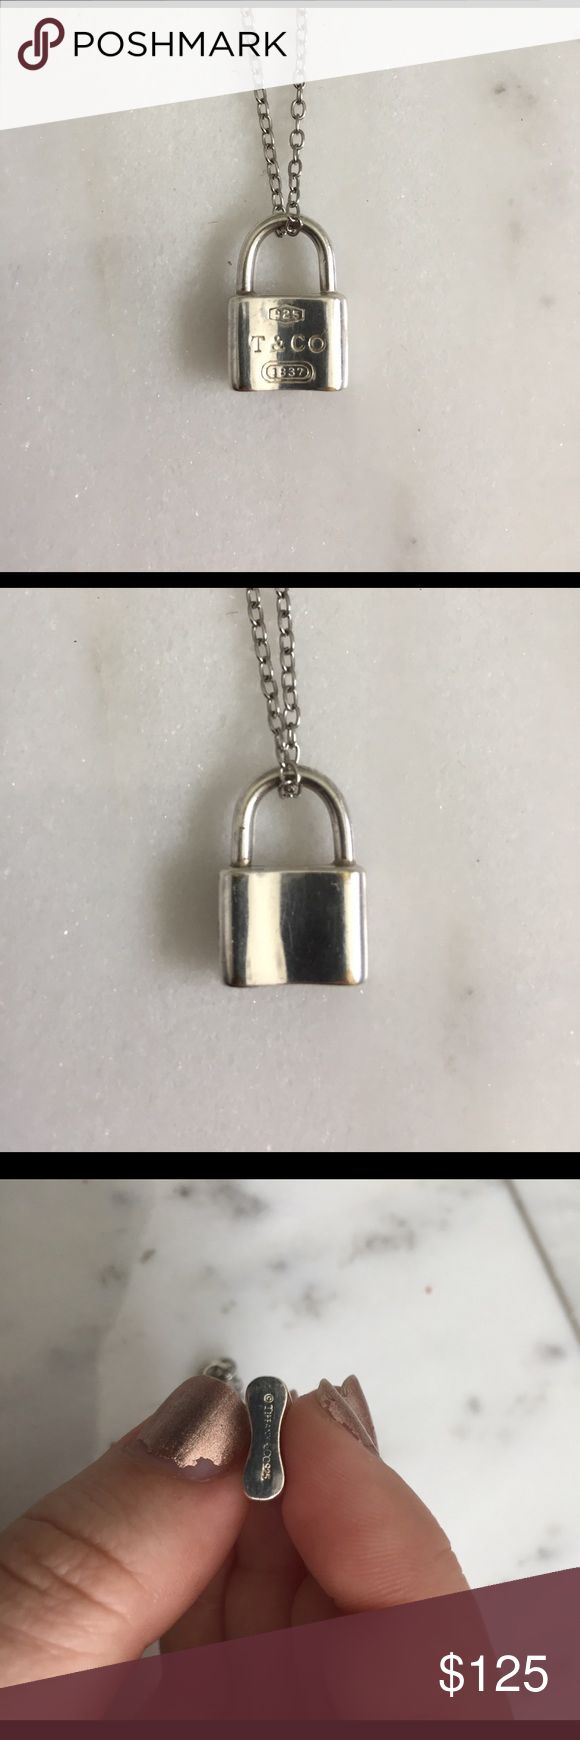 • Tiffany & Co. Lock Pendant • In great condition. There is some minor wear from being worn and the bottom is a bit worn so some of the letters have started to fade. It's super cute and I would keep it but I got this from my ex-boyfriend and I would really just like to get rid of it. Chain is not included. Tiffany & Co. Jewelry